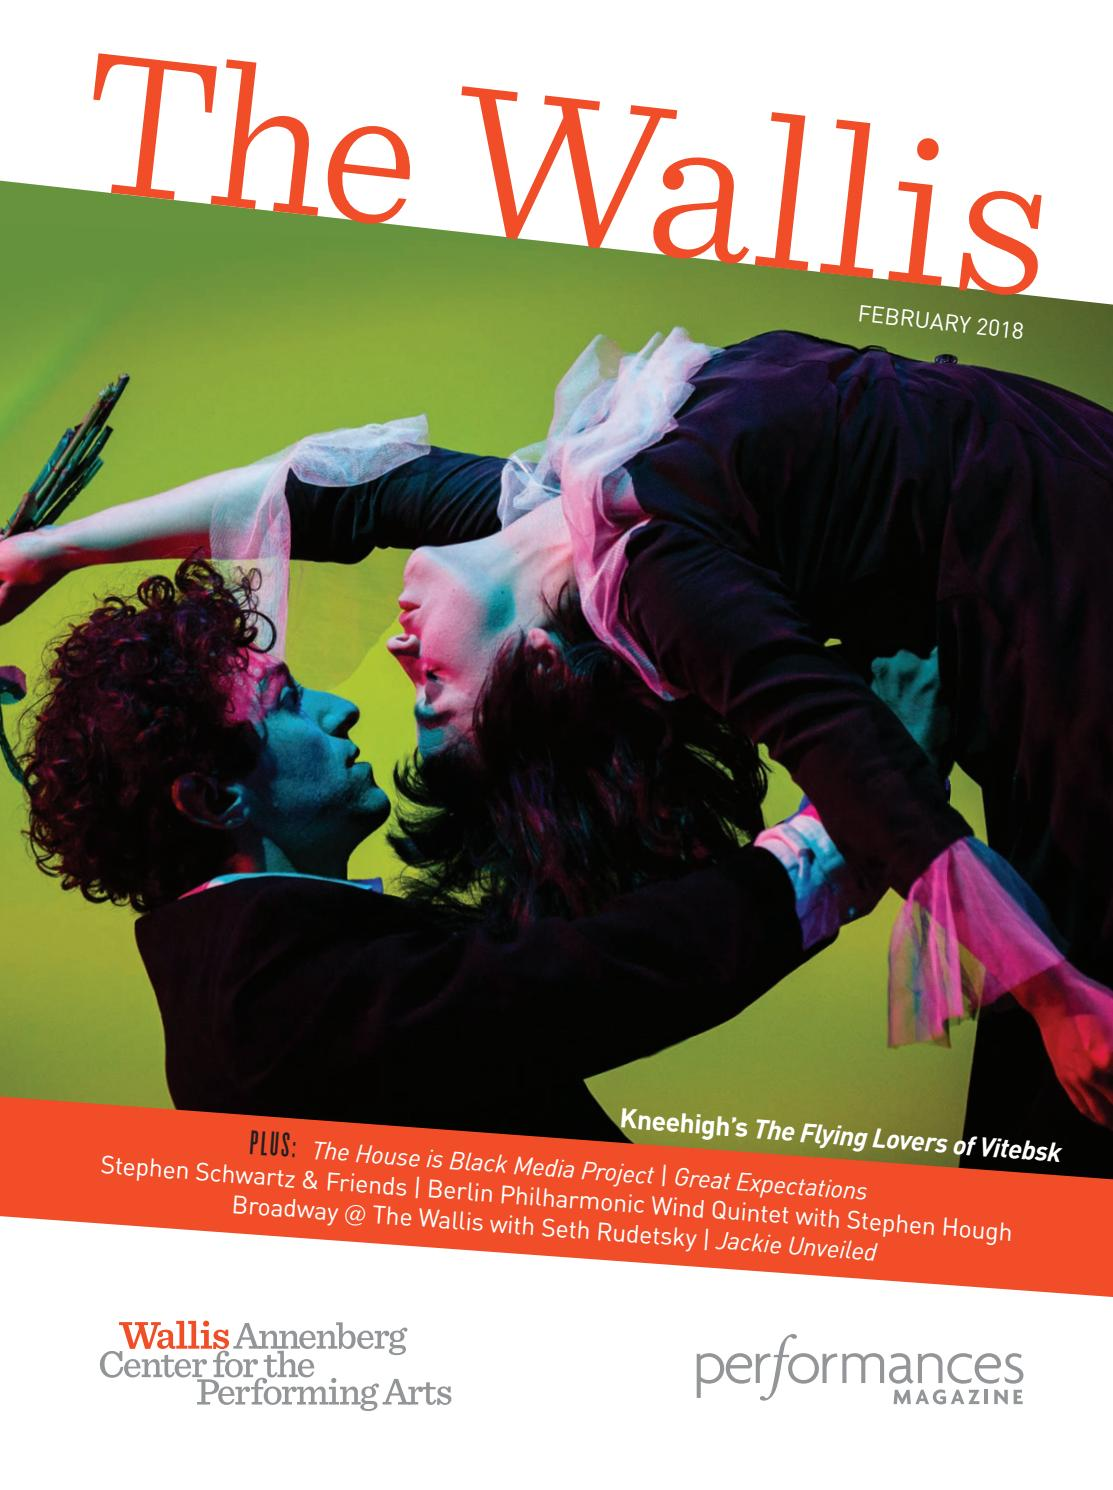 Performances Magazine: The Wallis, February 2018 by